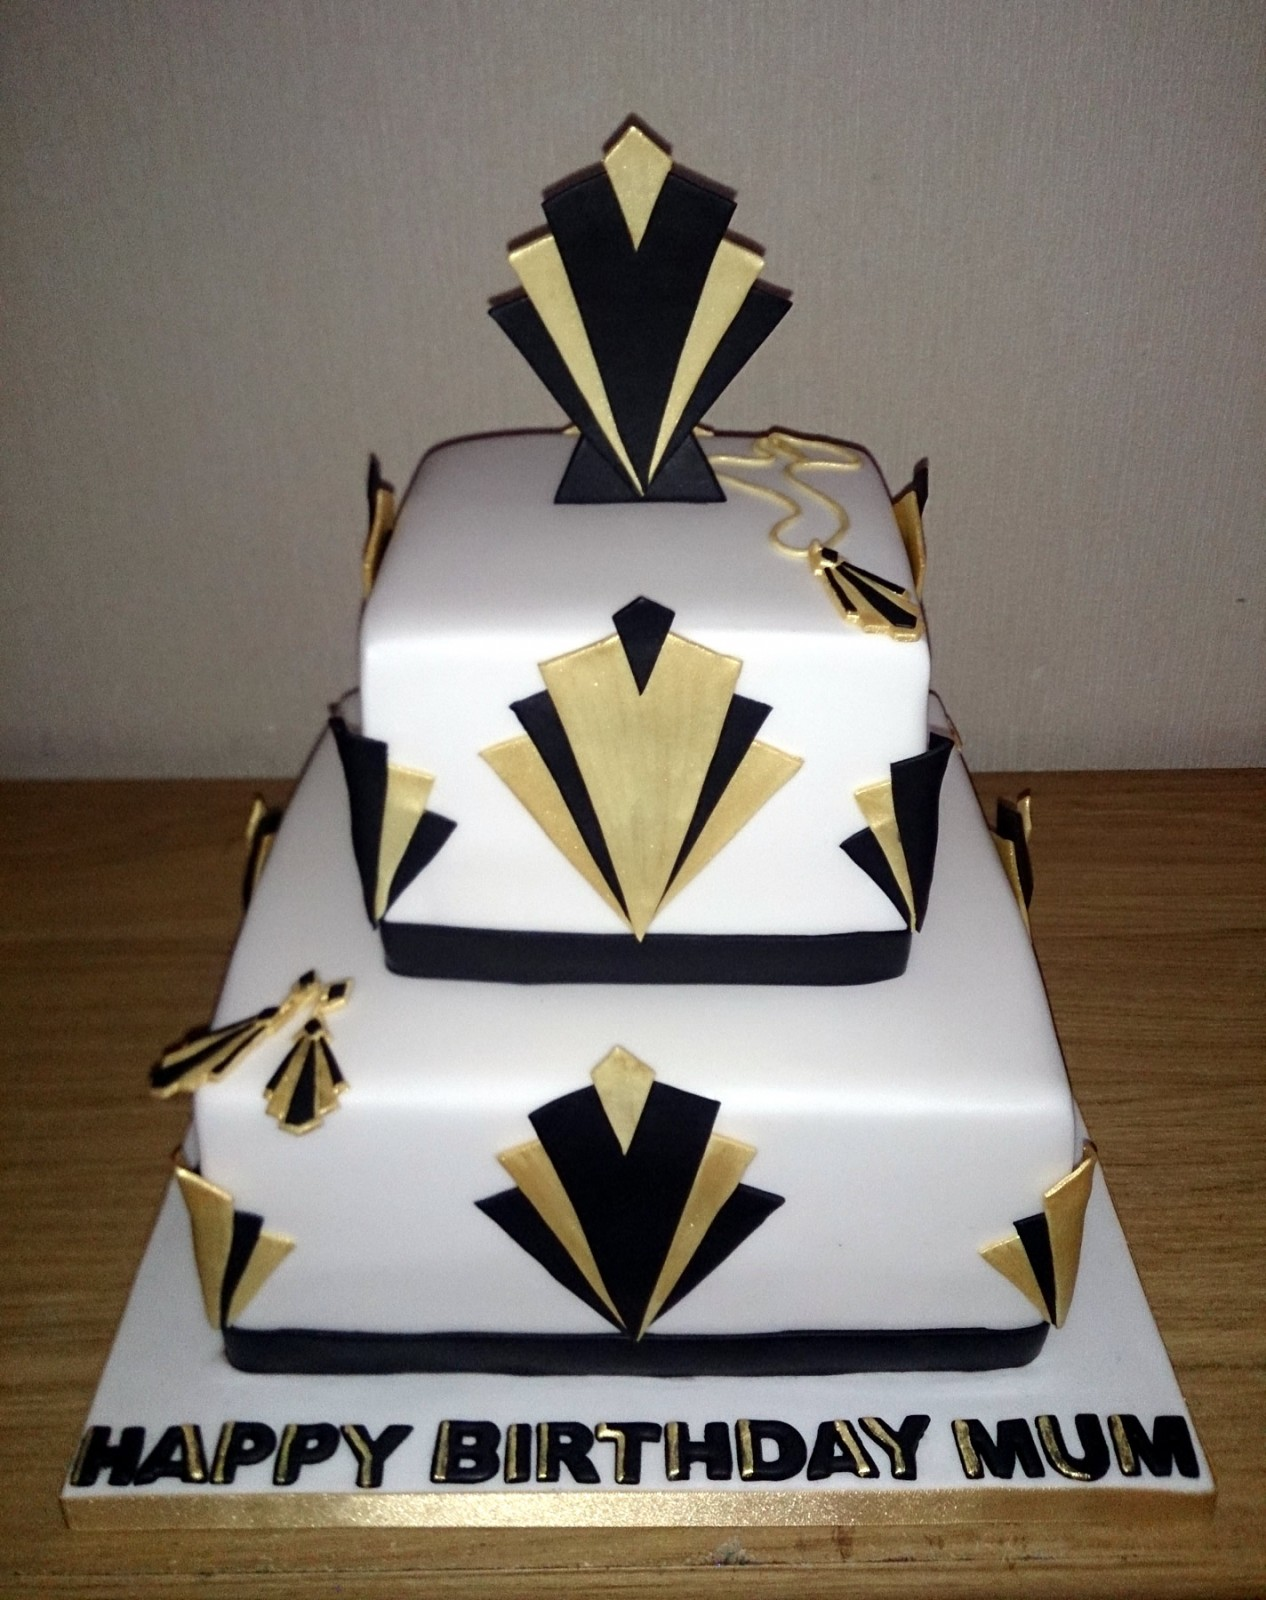 Art Deco Christmas Cake : 2 Tier Art Deco Inspired Birthday Cake   Susie s Cakes